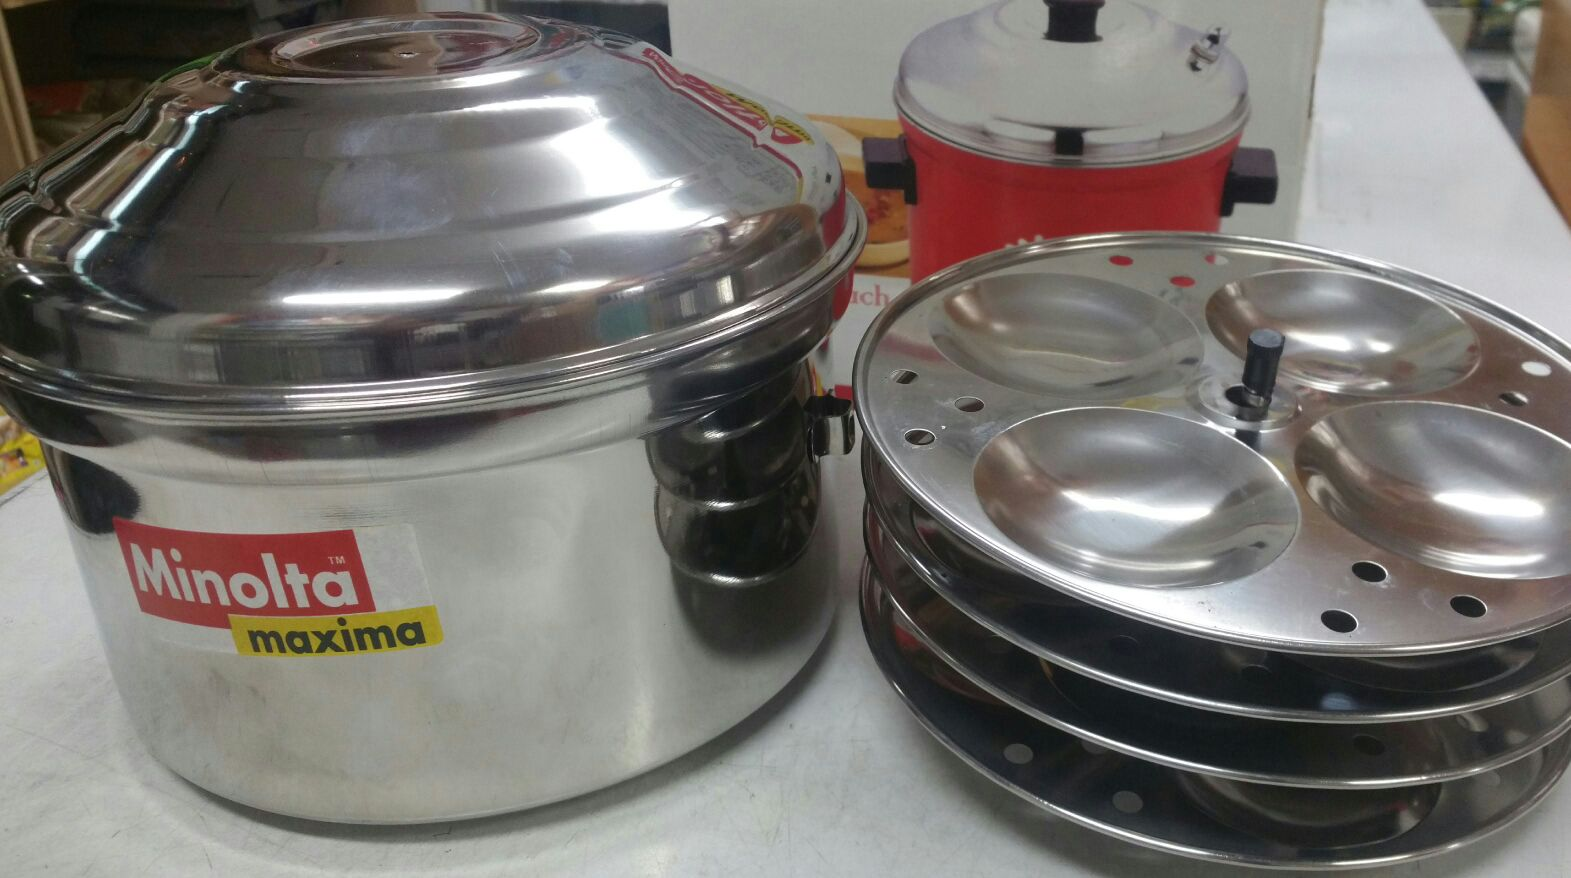 SS Idli Cooker 4 Plates (Full Cooking Set)